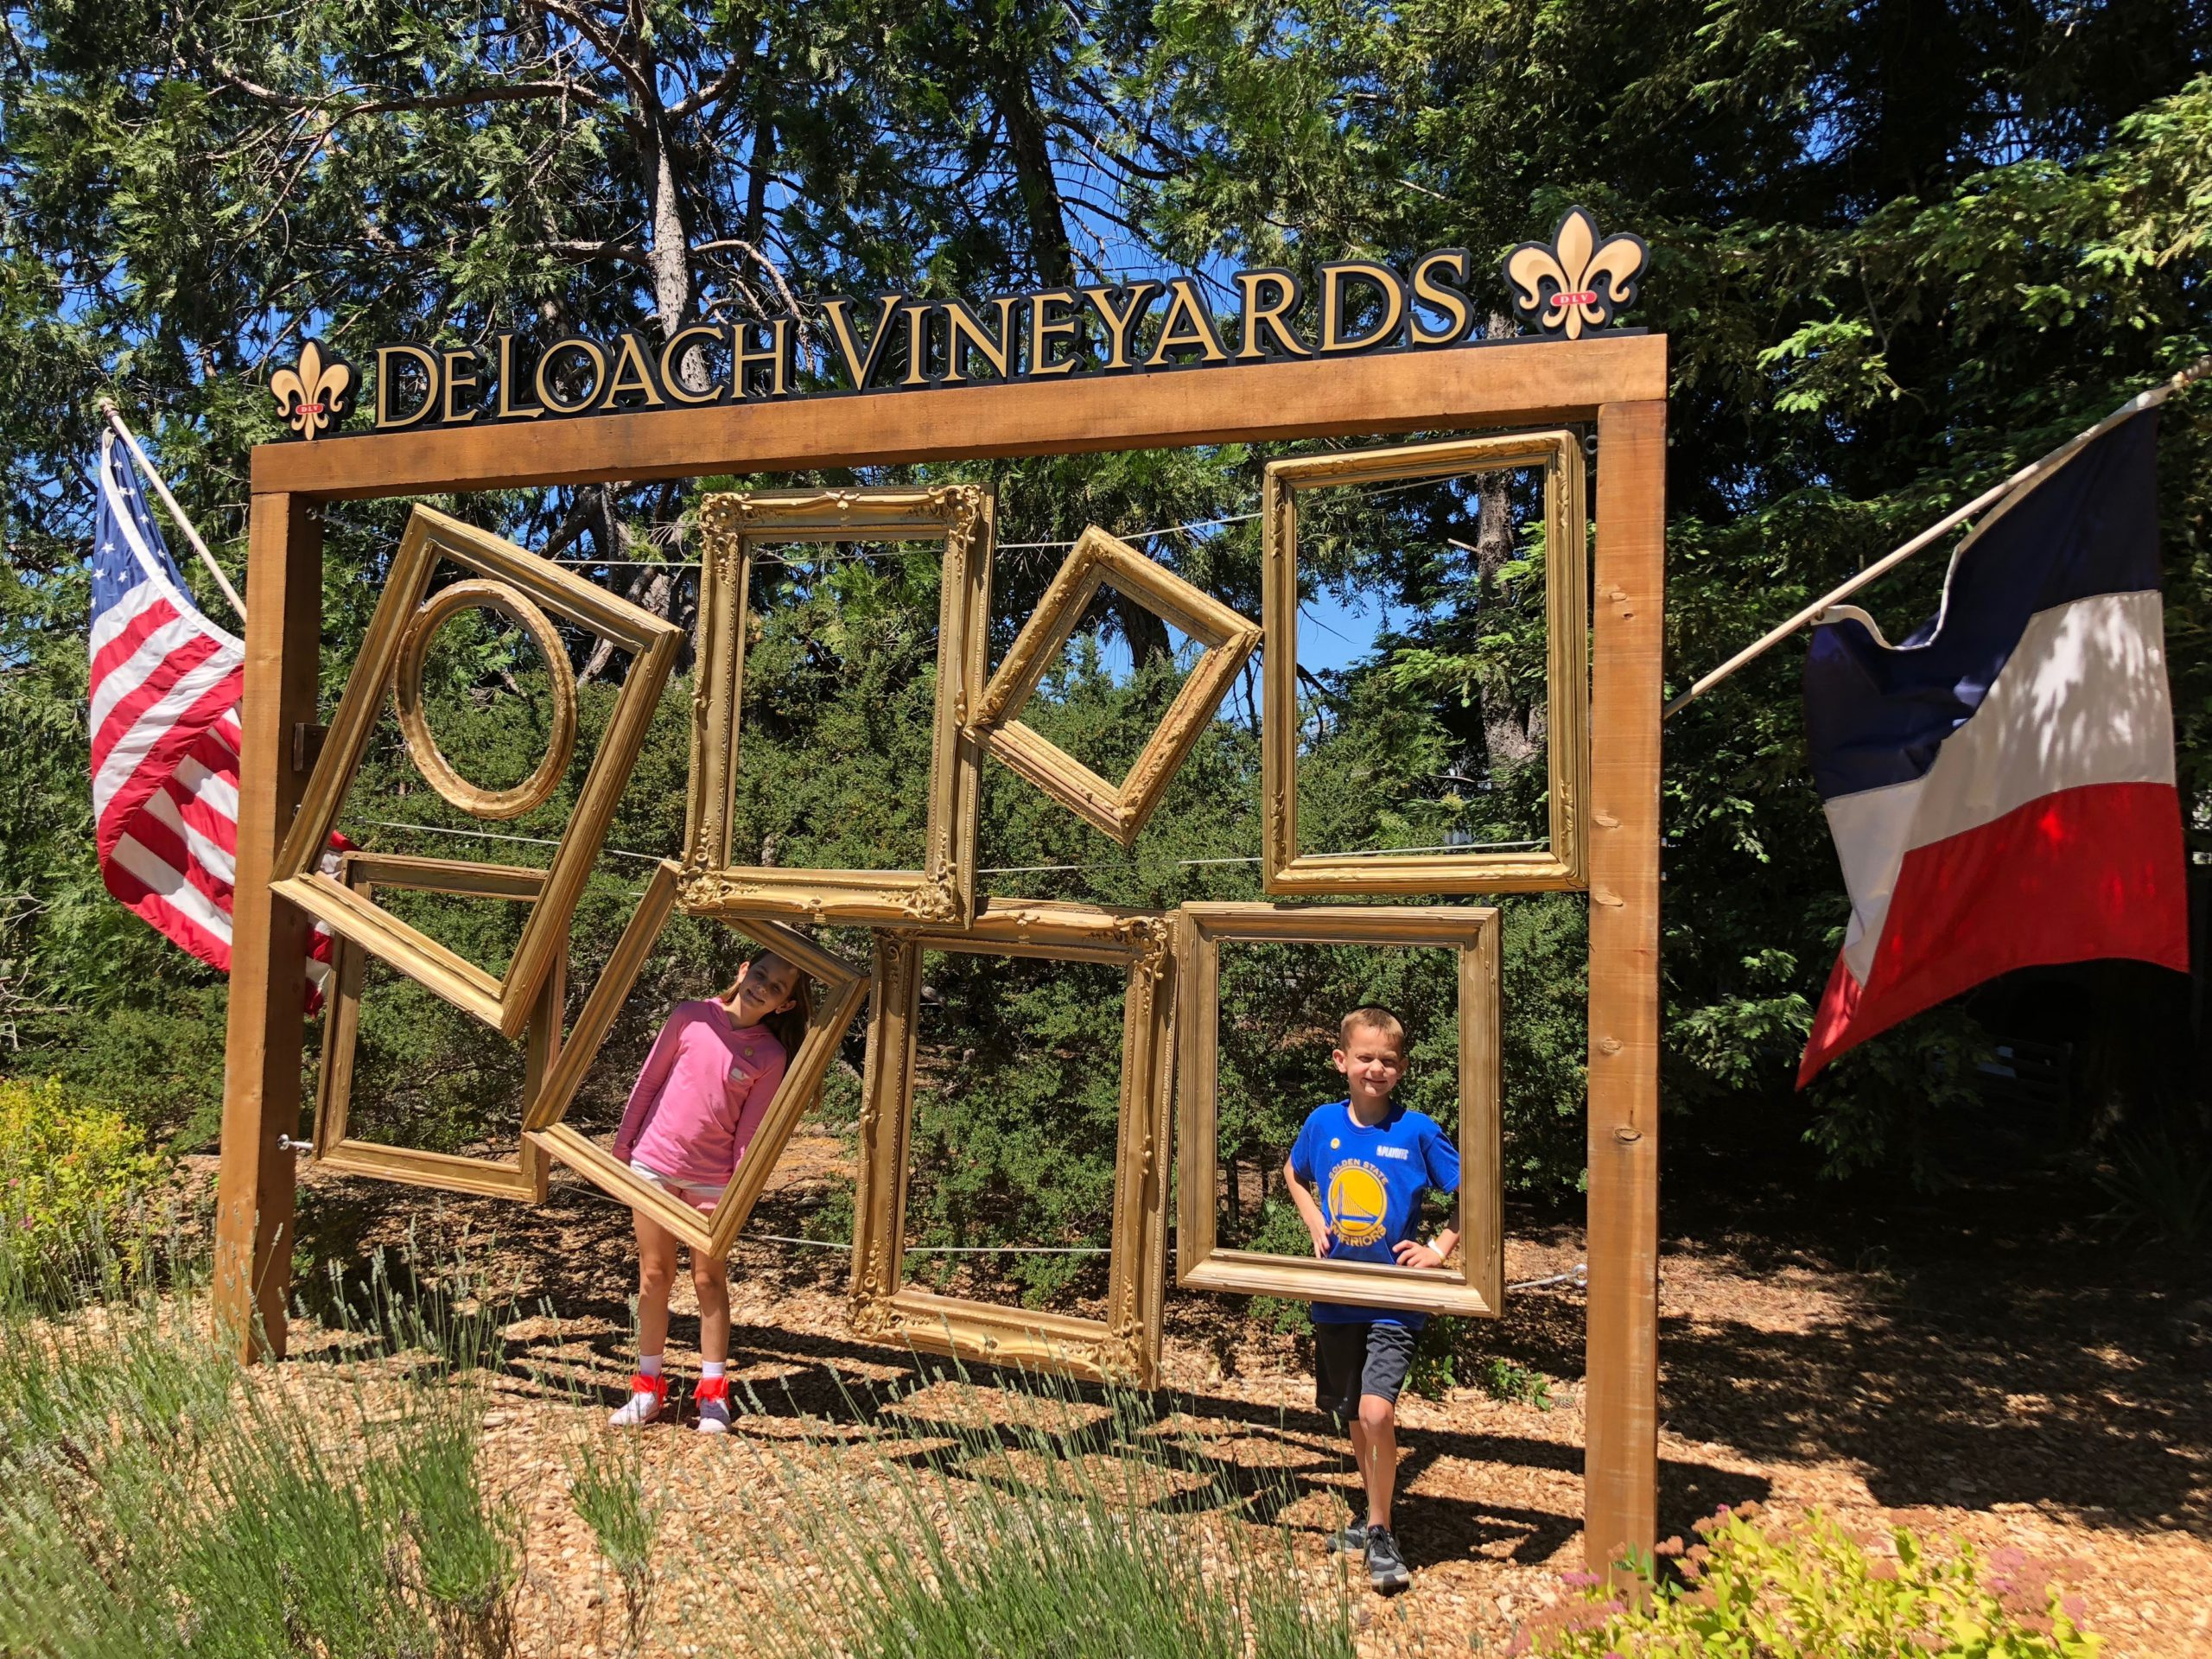 Paying a visit to the DeLoach vineyard winery